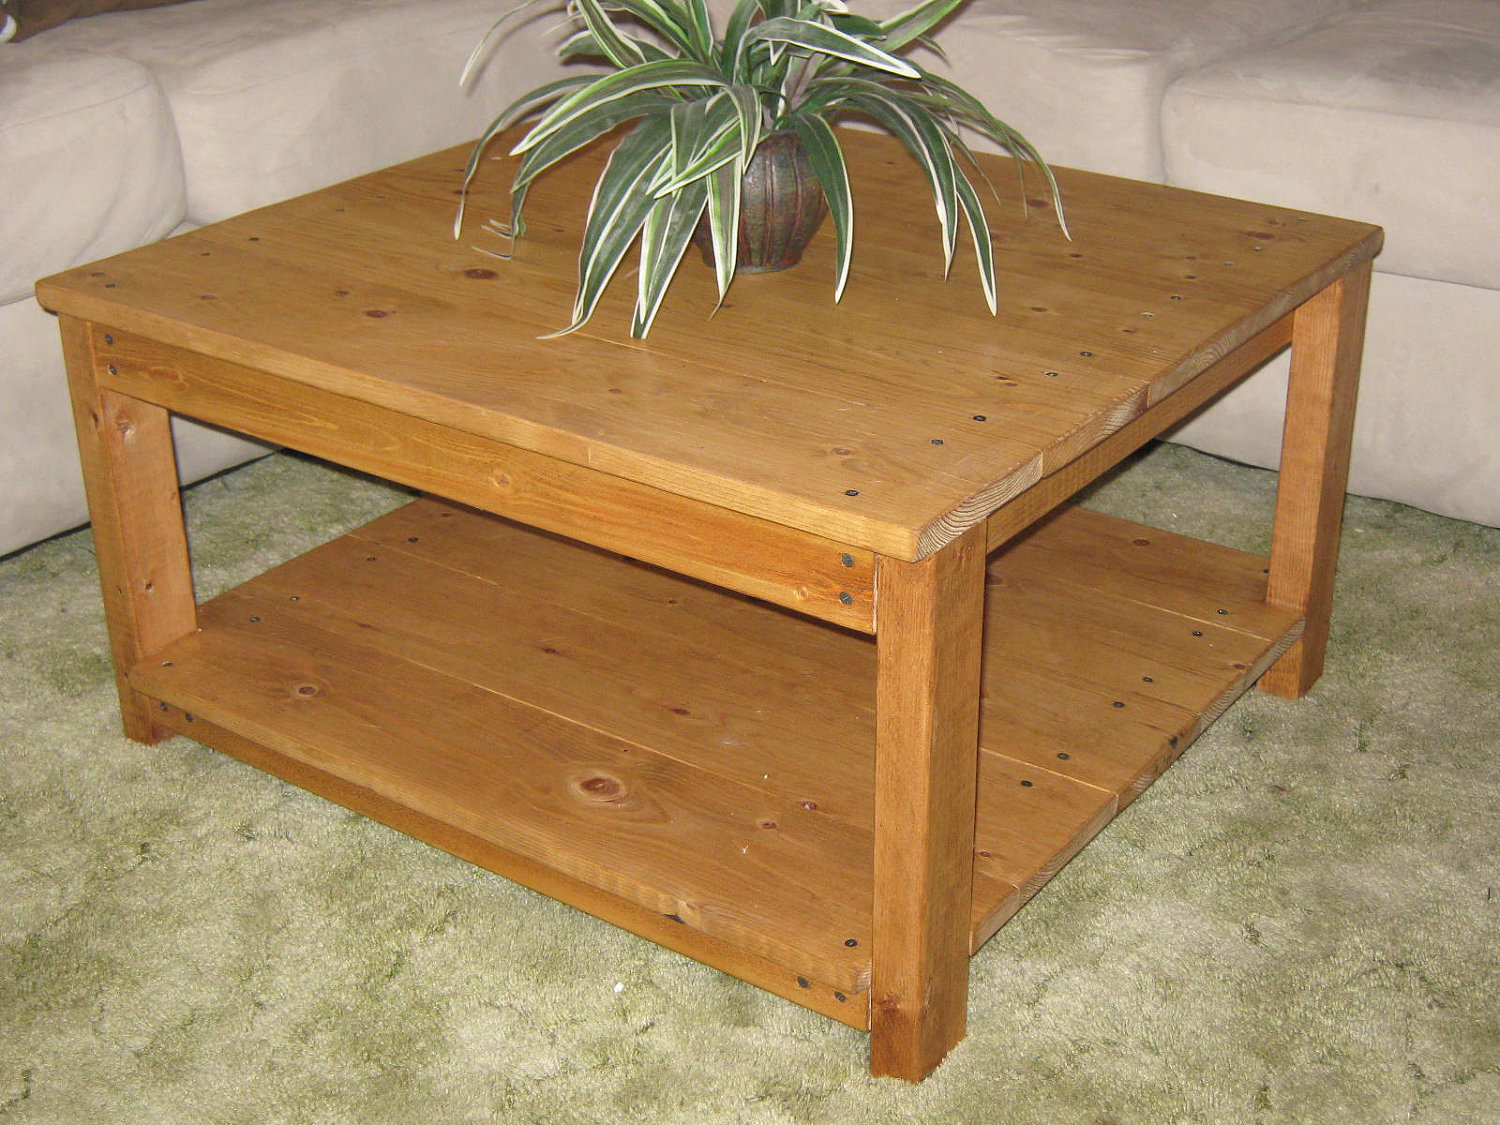 wooden coffee table plans photo - 5